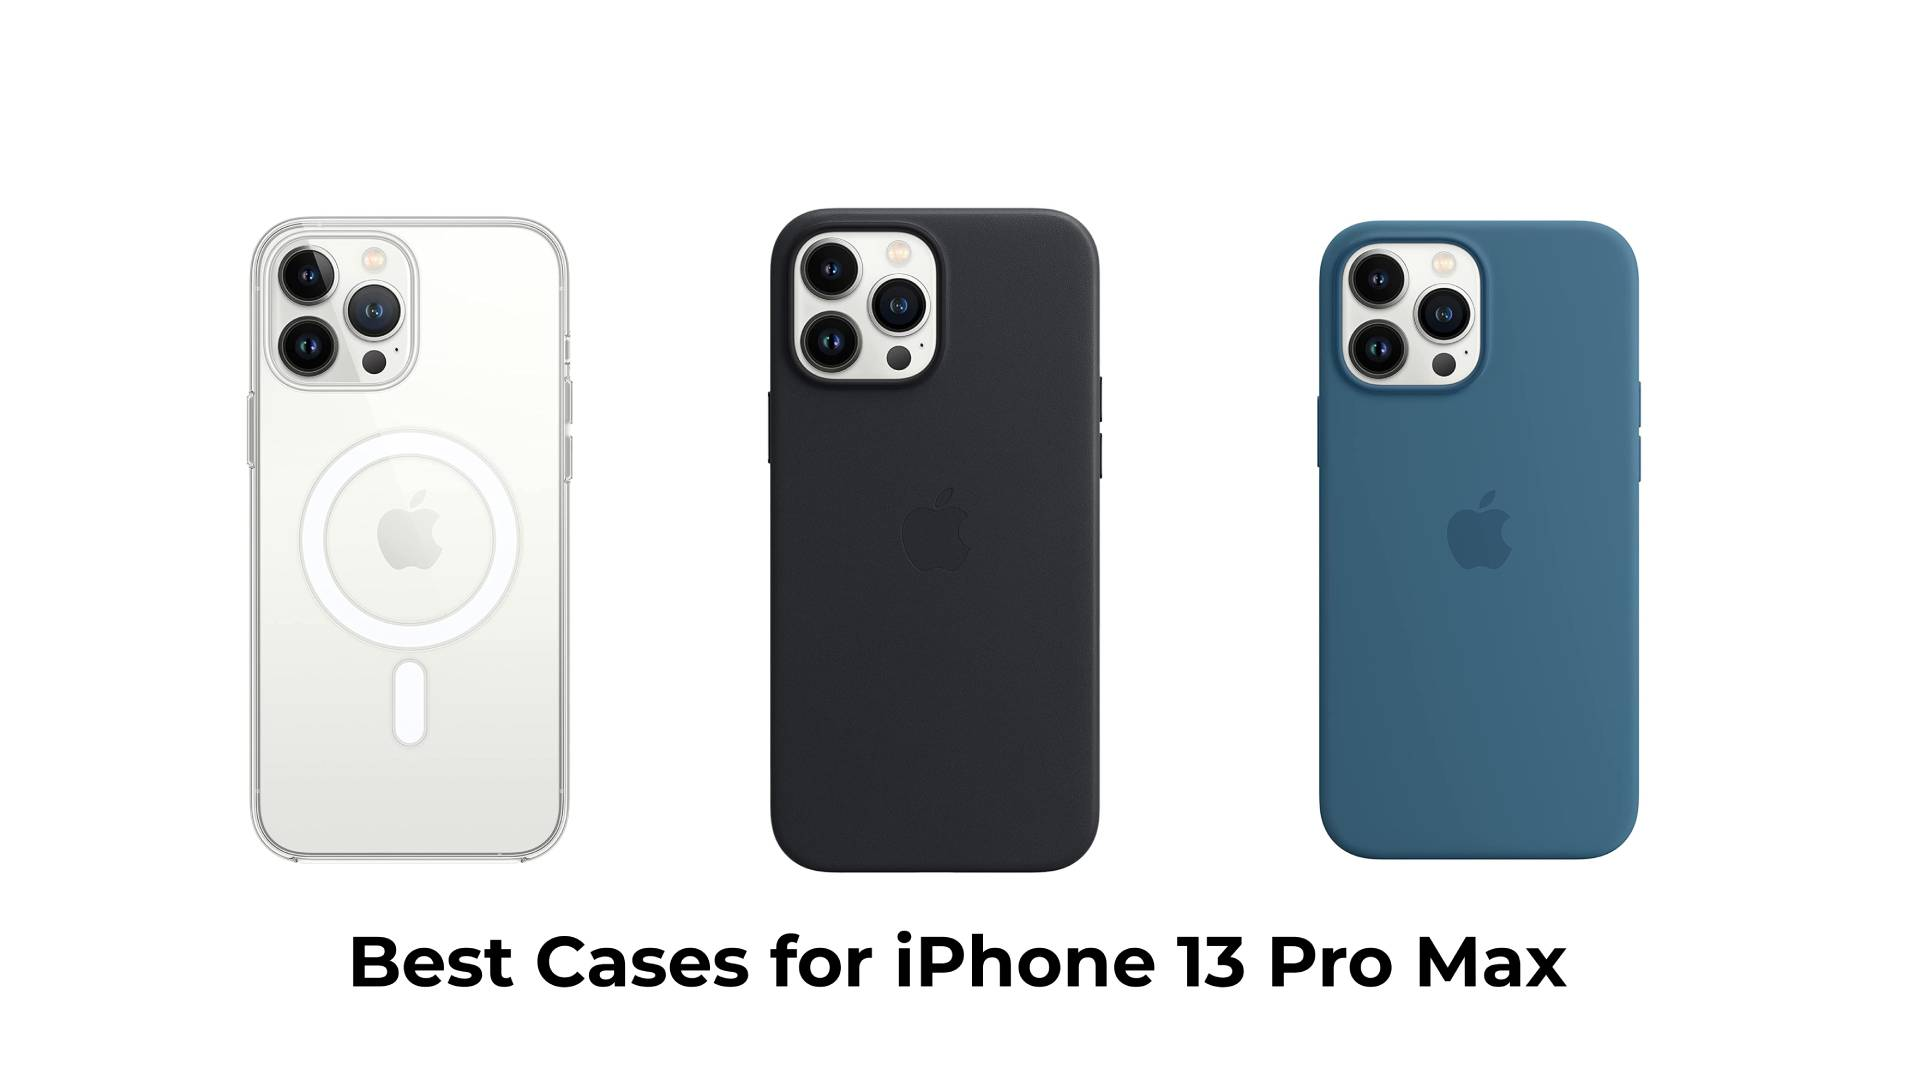 Best Cases for iPhone 13 Pro Max